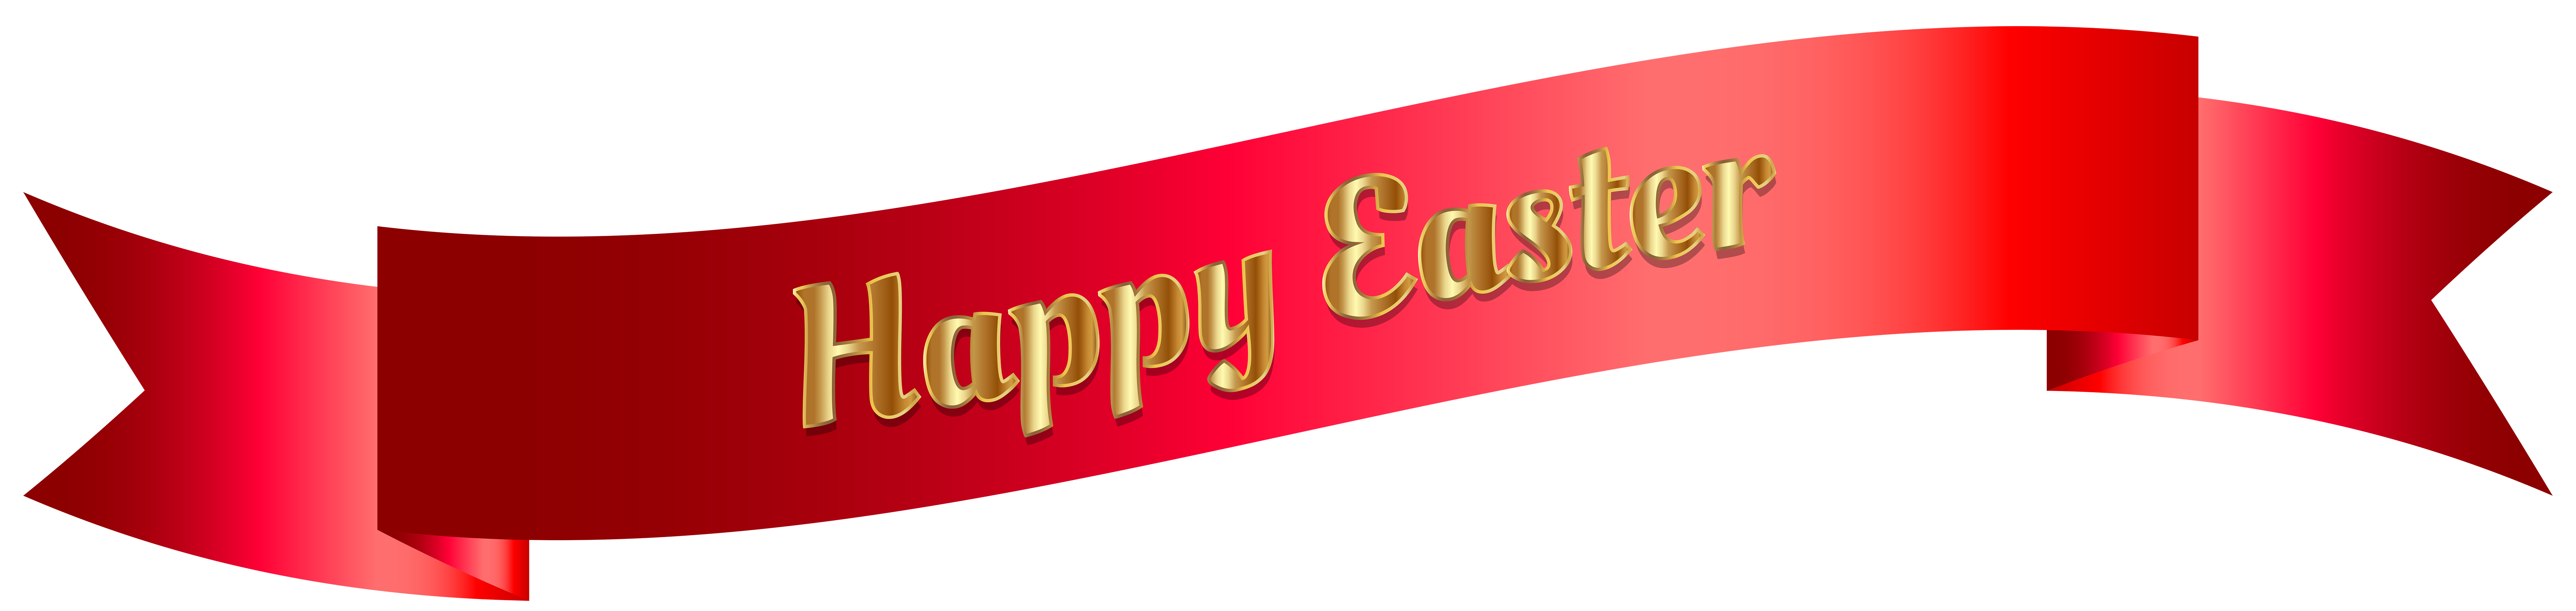 Red Happy Easter Banner PNG Clip Art Image.